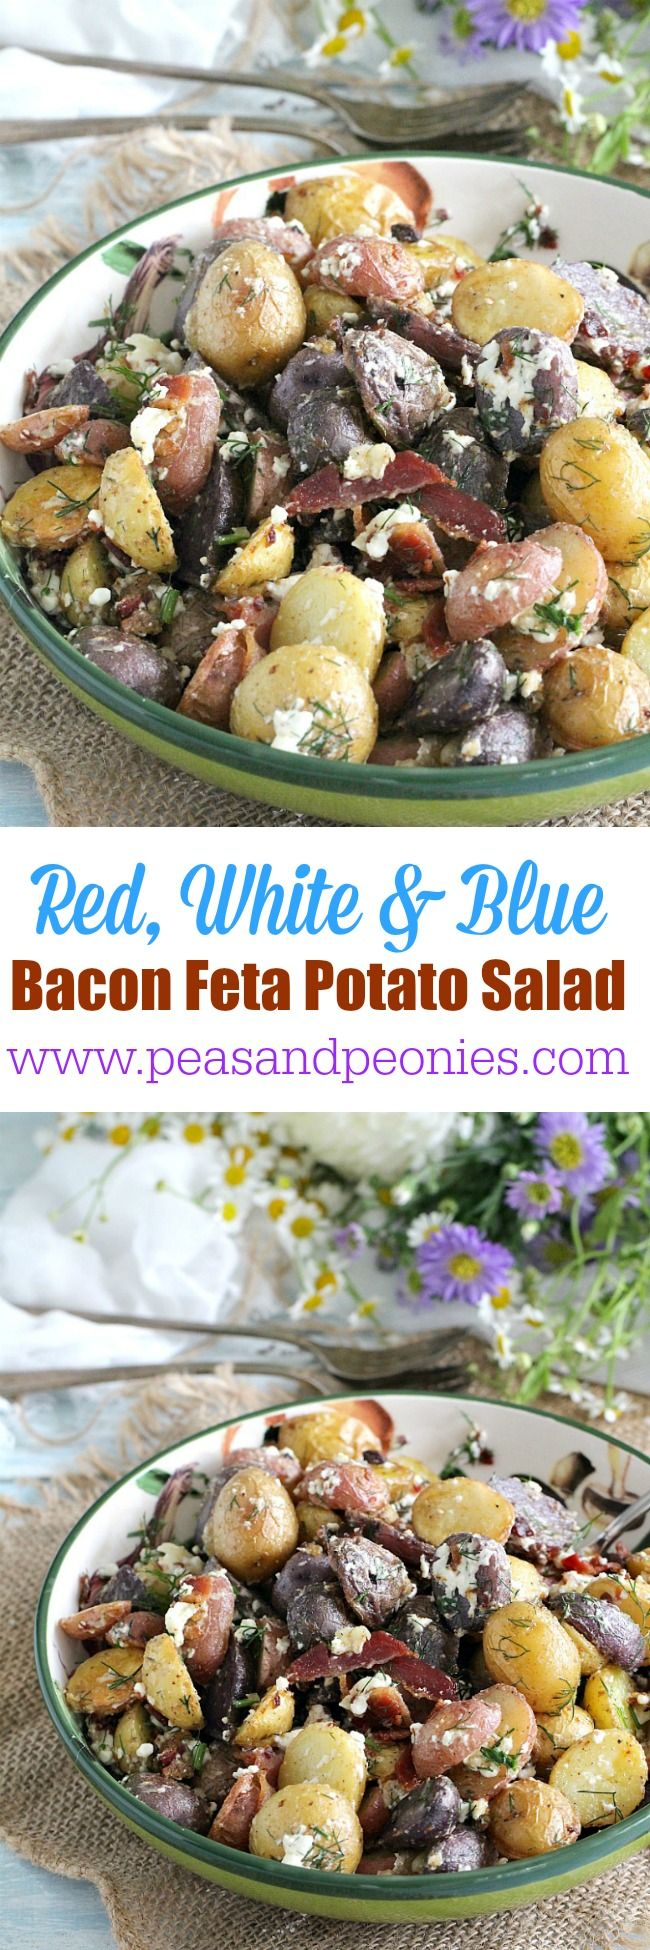 Mayo free and gluten free this Red, White and Blue Bacon Feta Potato Salad is tender, loaded with garlic flavor and beautiful different textures and colors. Peas and Peonies